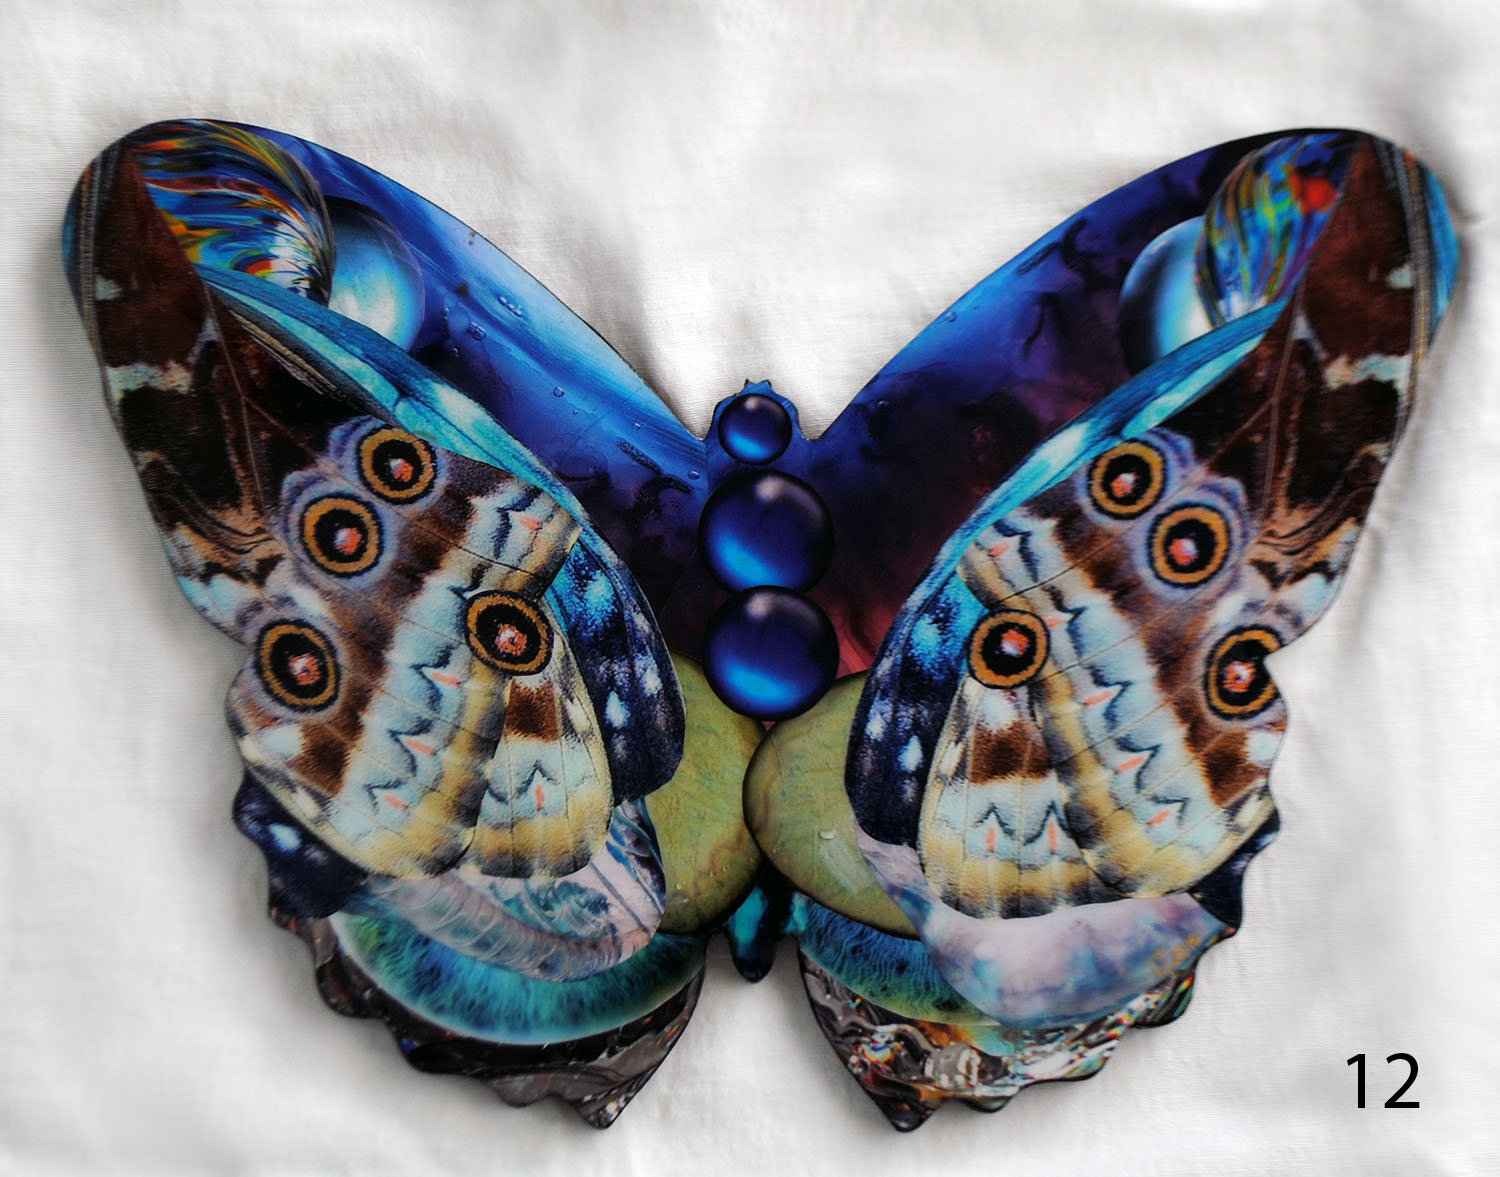 Metamorphosis. Butterfly-Collage ©2015 Carolina Luciano